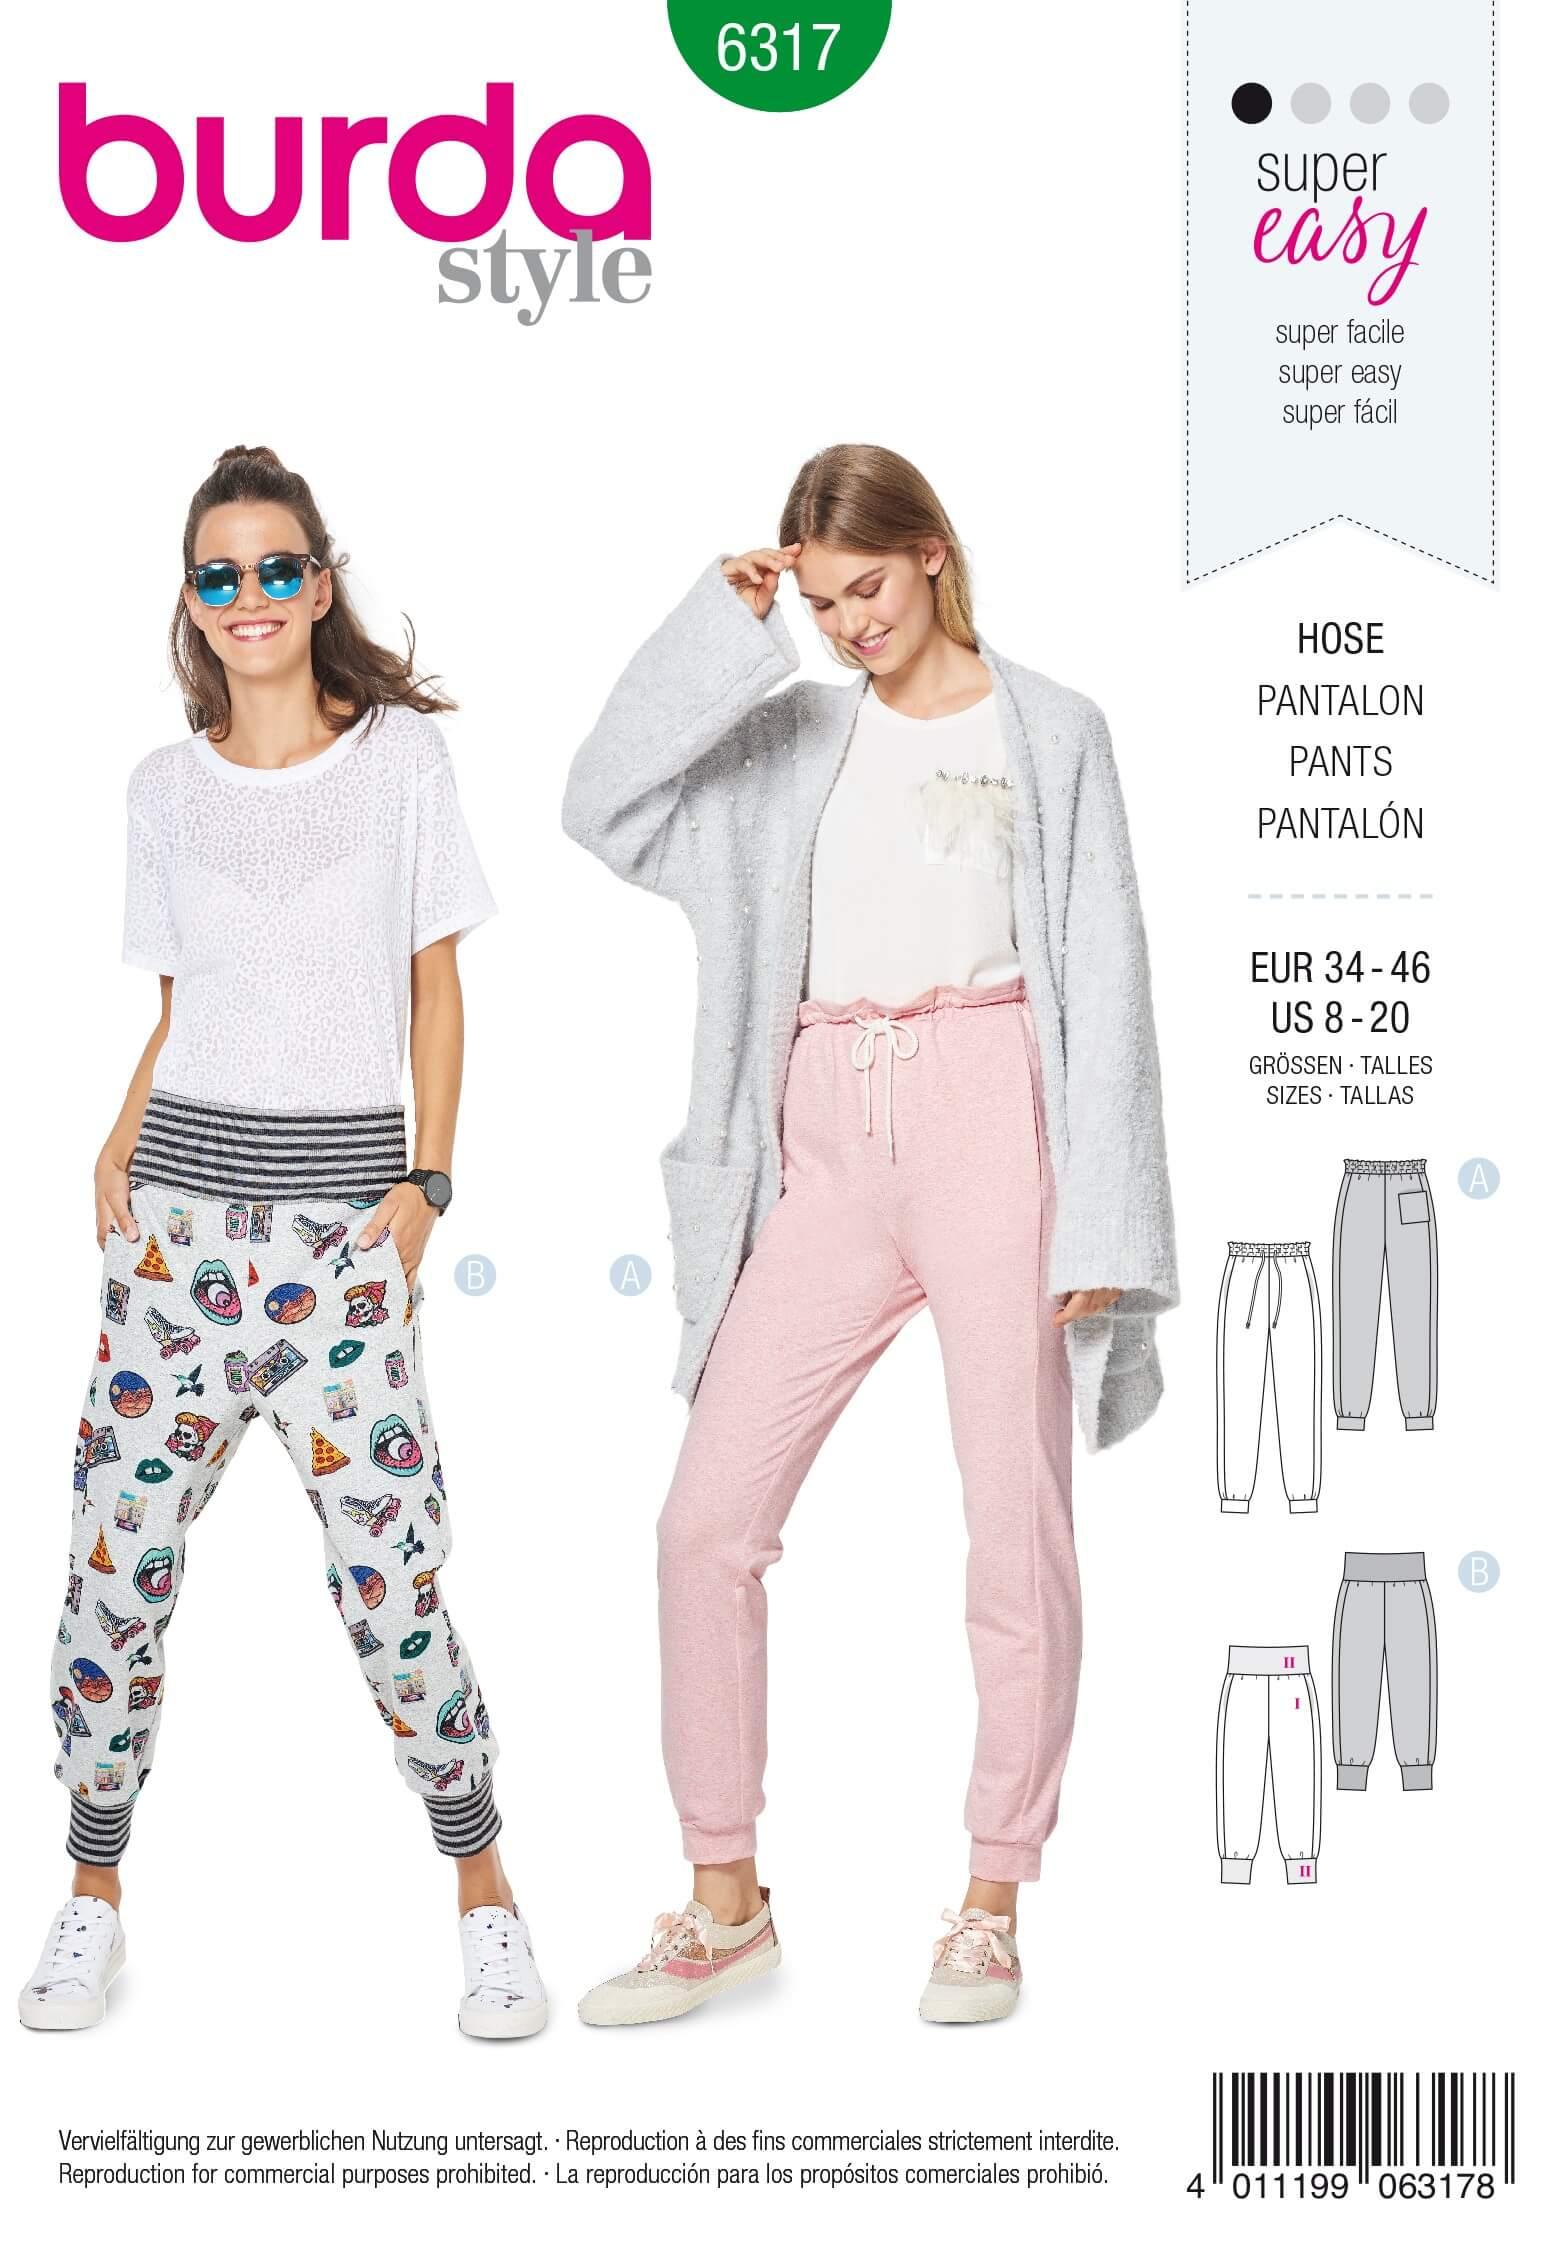 Burda Style Misses' Jogging Bottoms Pull On Trousers Casual Sewing Pattern 6317